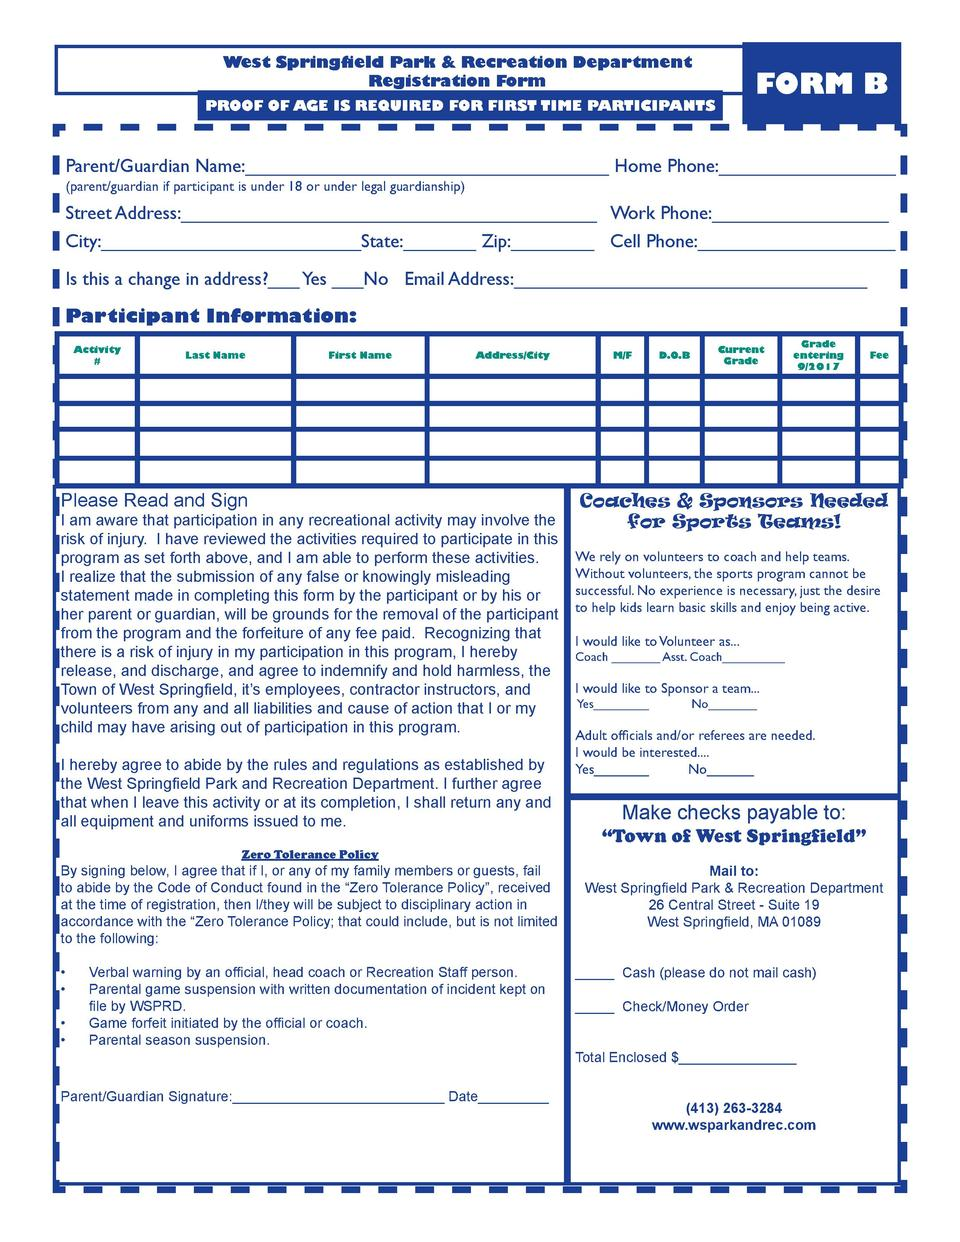 West Springfield Park   Recreation Department Registration Form  FORM B  PROOF OF AGE IS REQUIRED FOR FIRST TIME PARTICIPA...